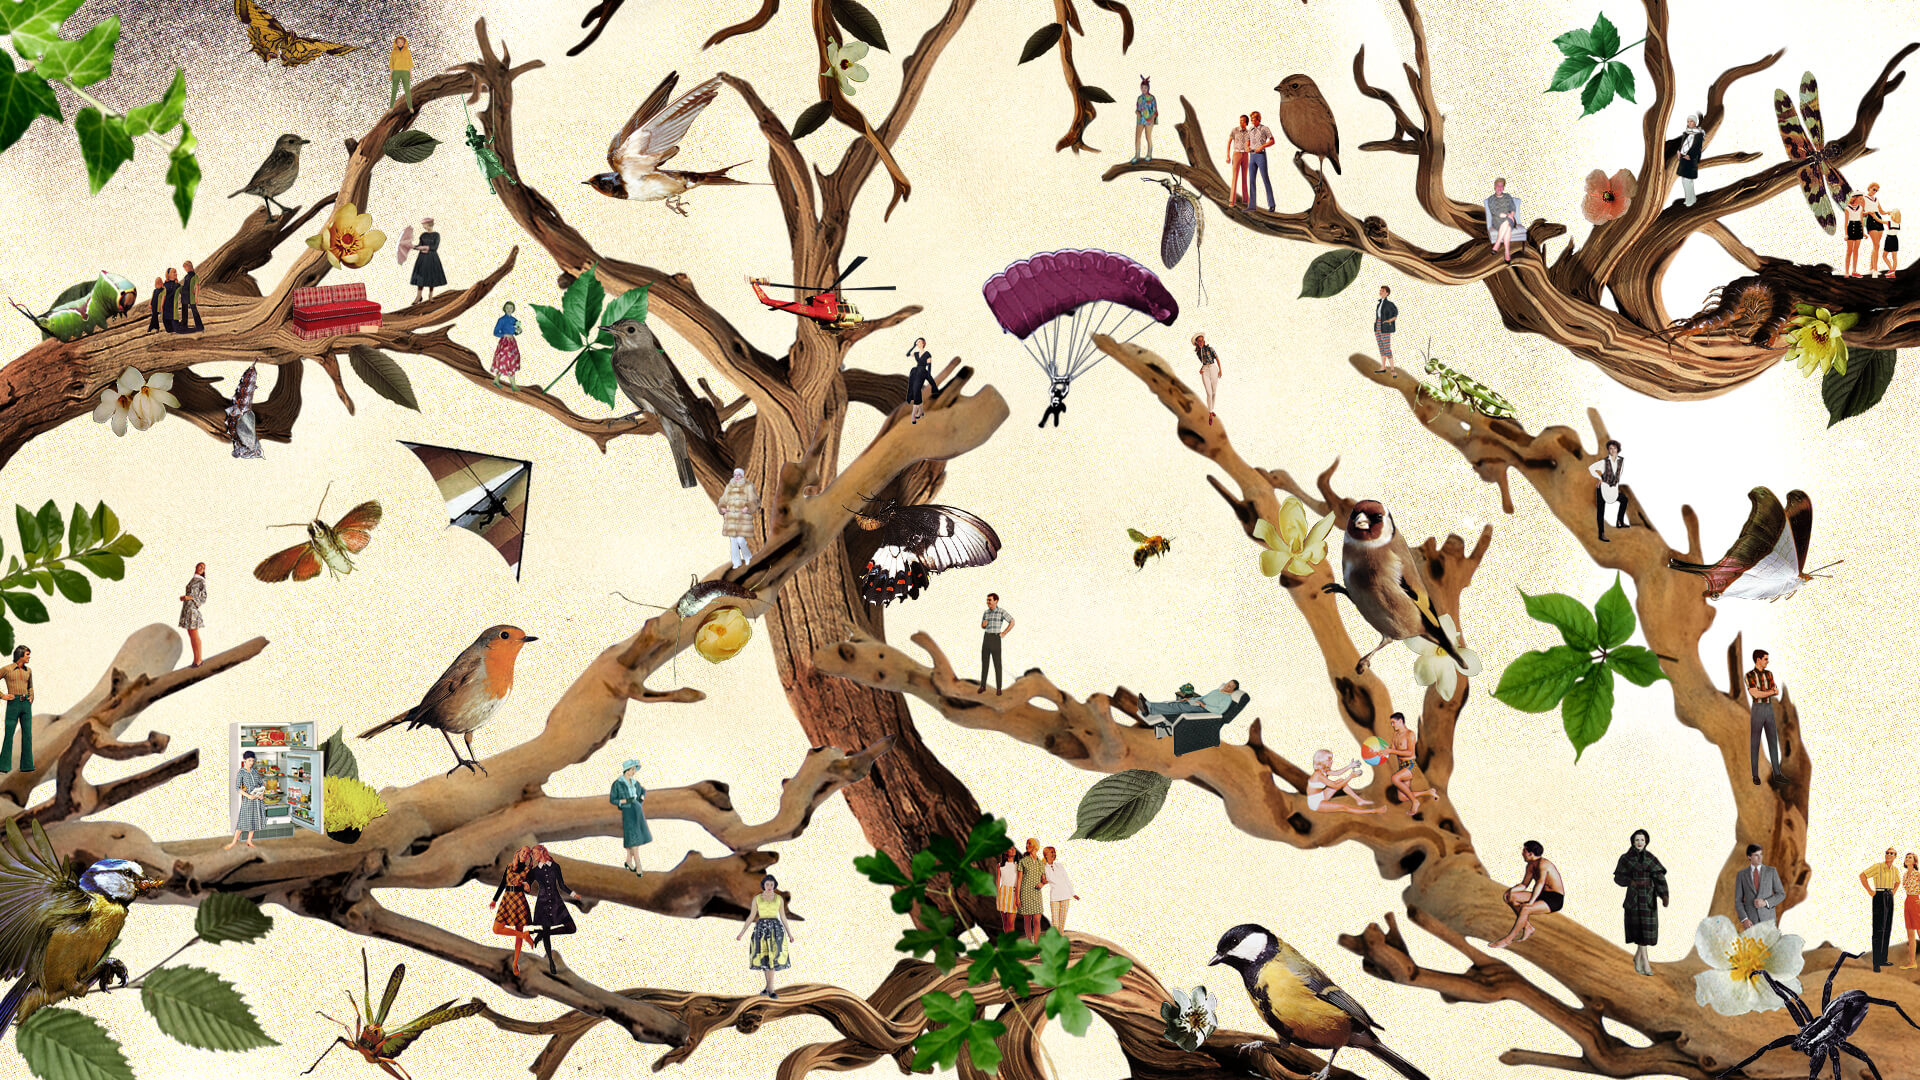 tree branches covered in birds, insects and people